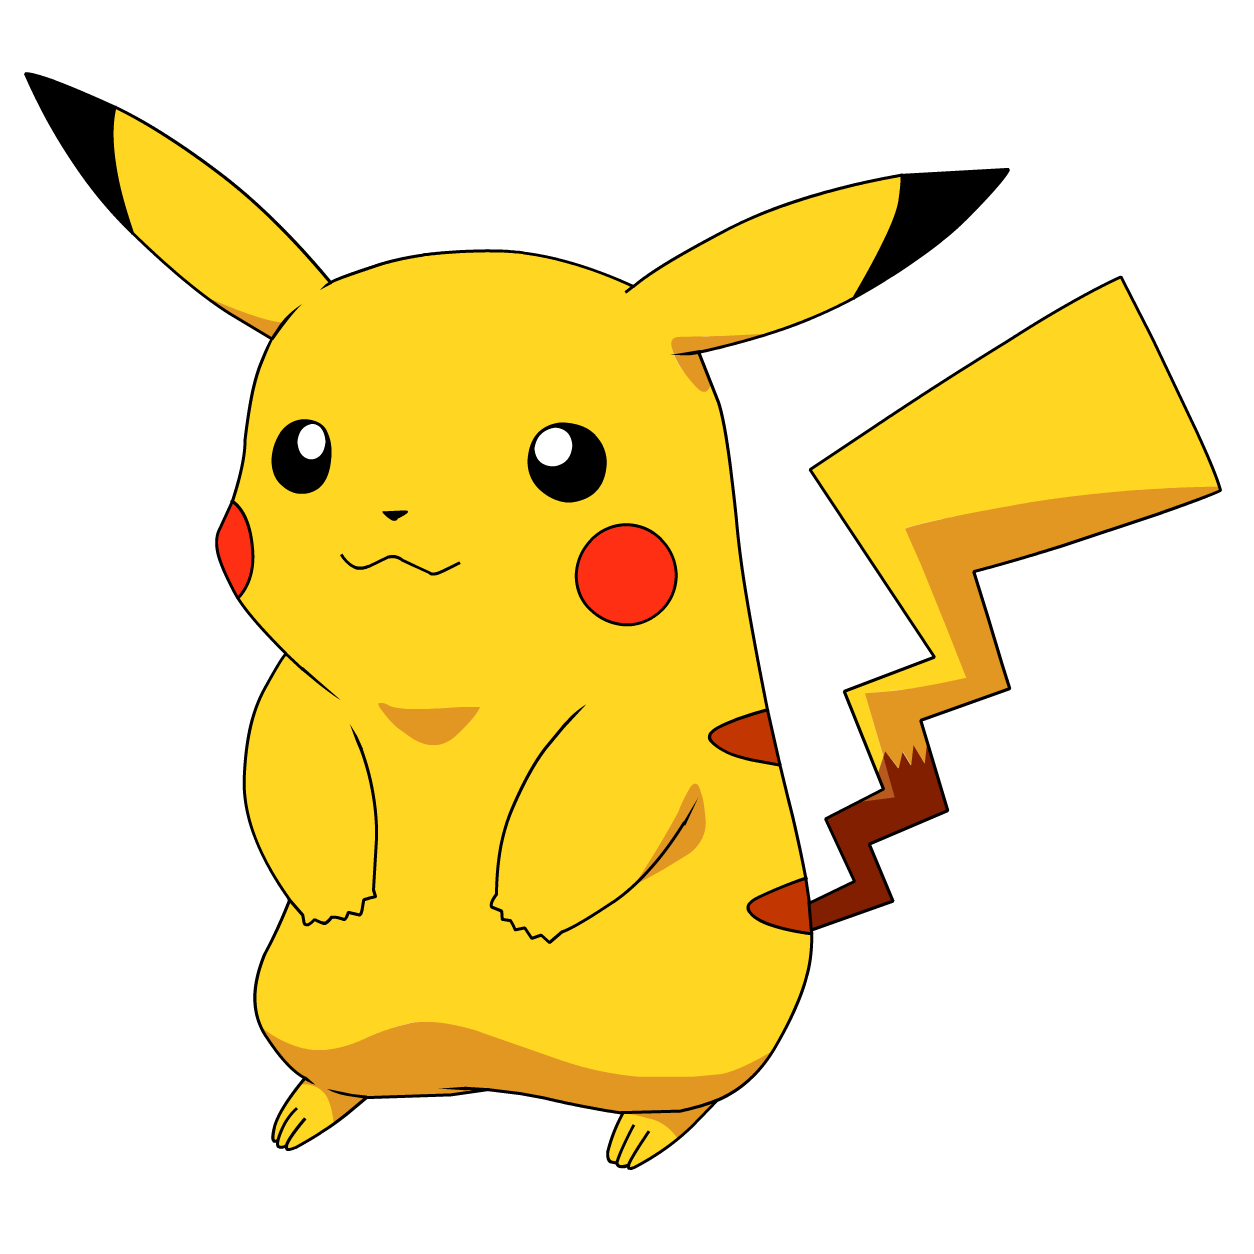 Opikachu clipart clip royalty free stock Free Pikachu, Download Free Clip Art, Free Clip Art on Clipart Library clip royalty free stock